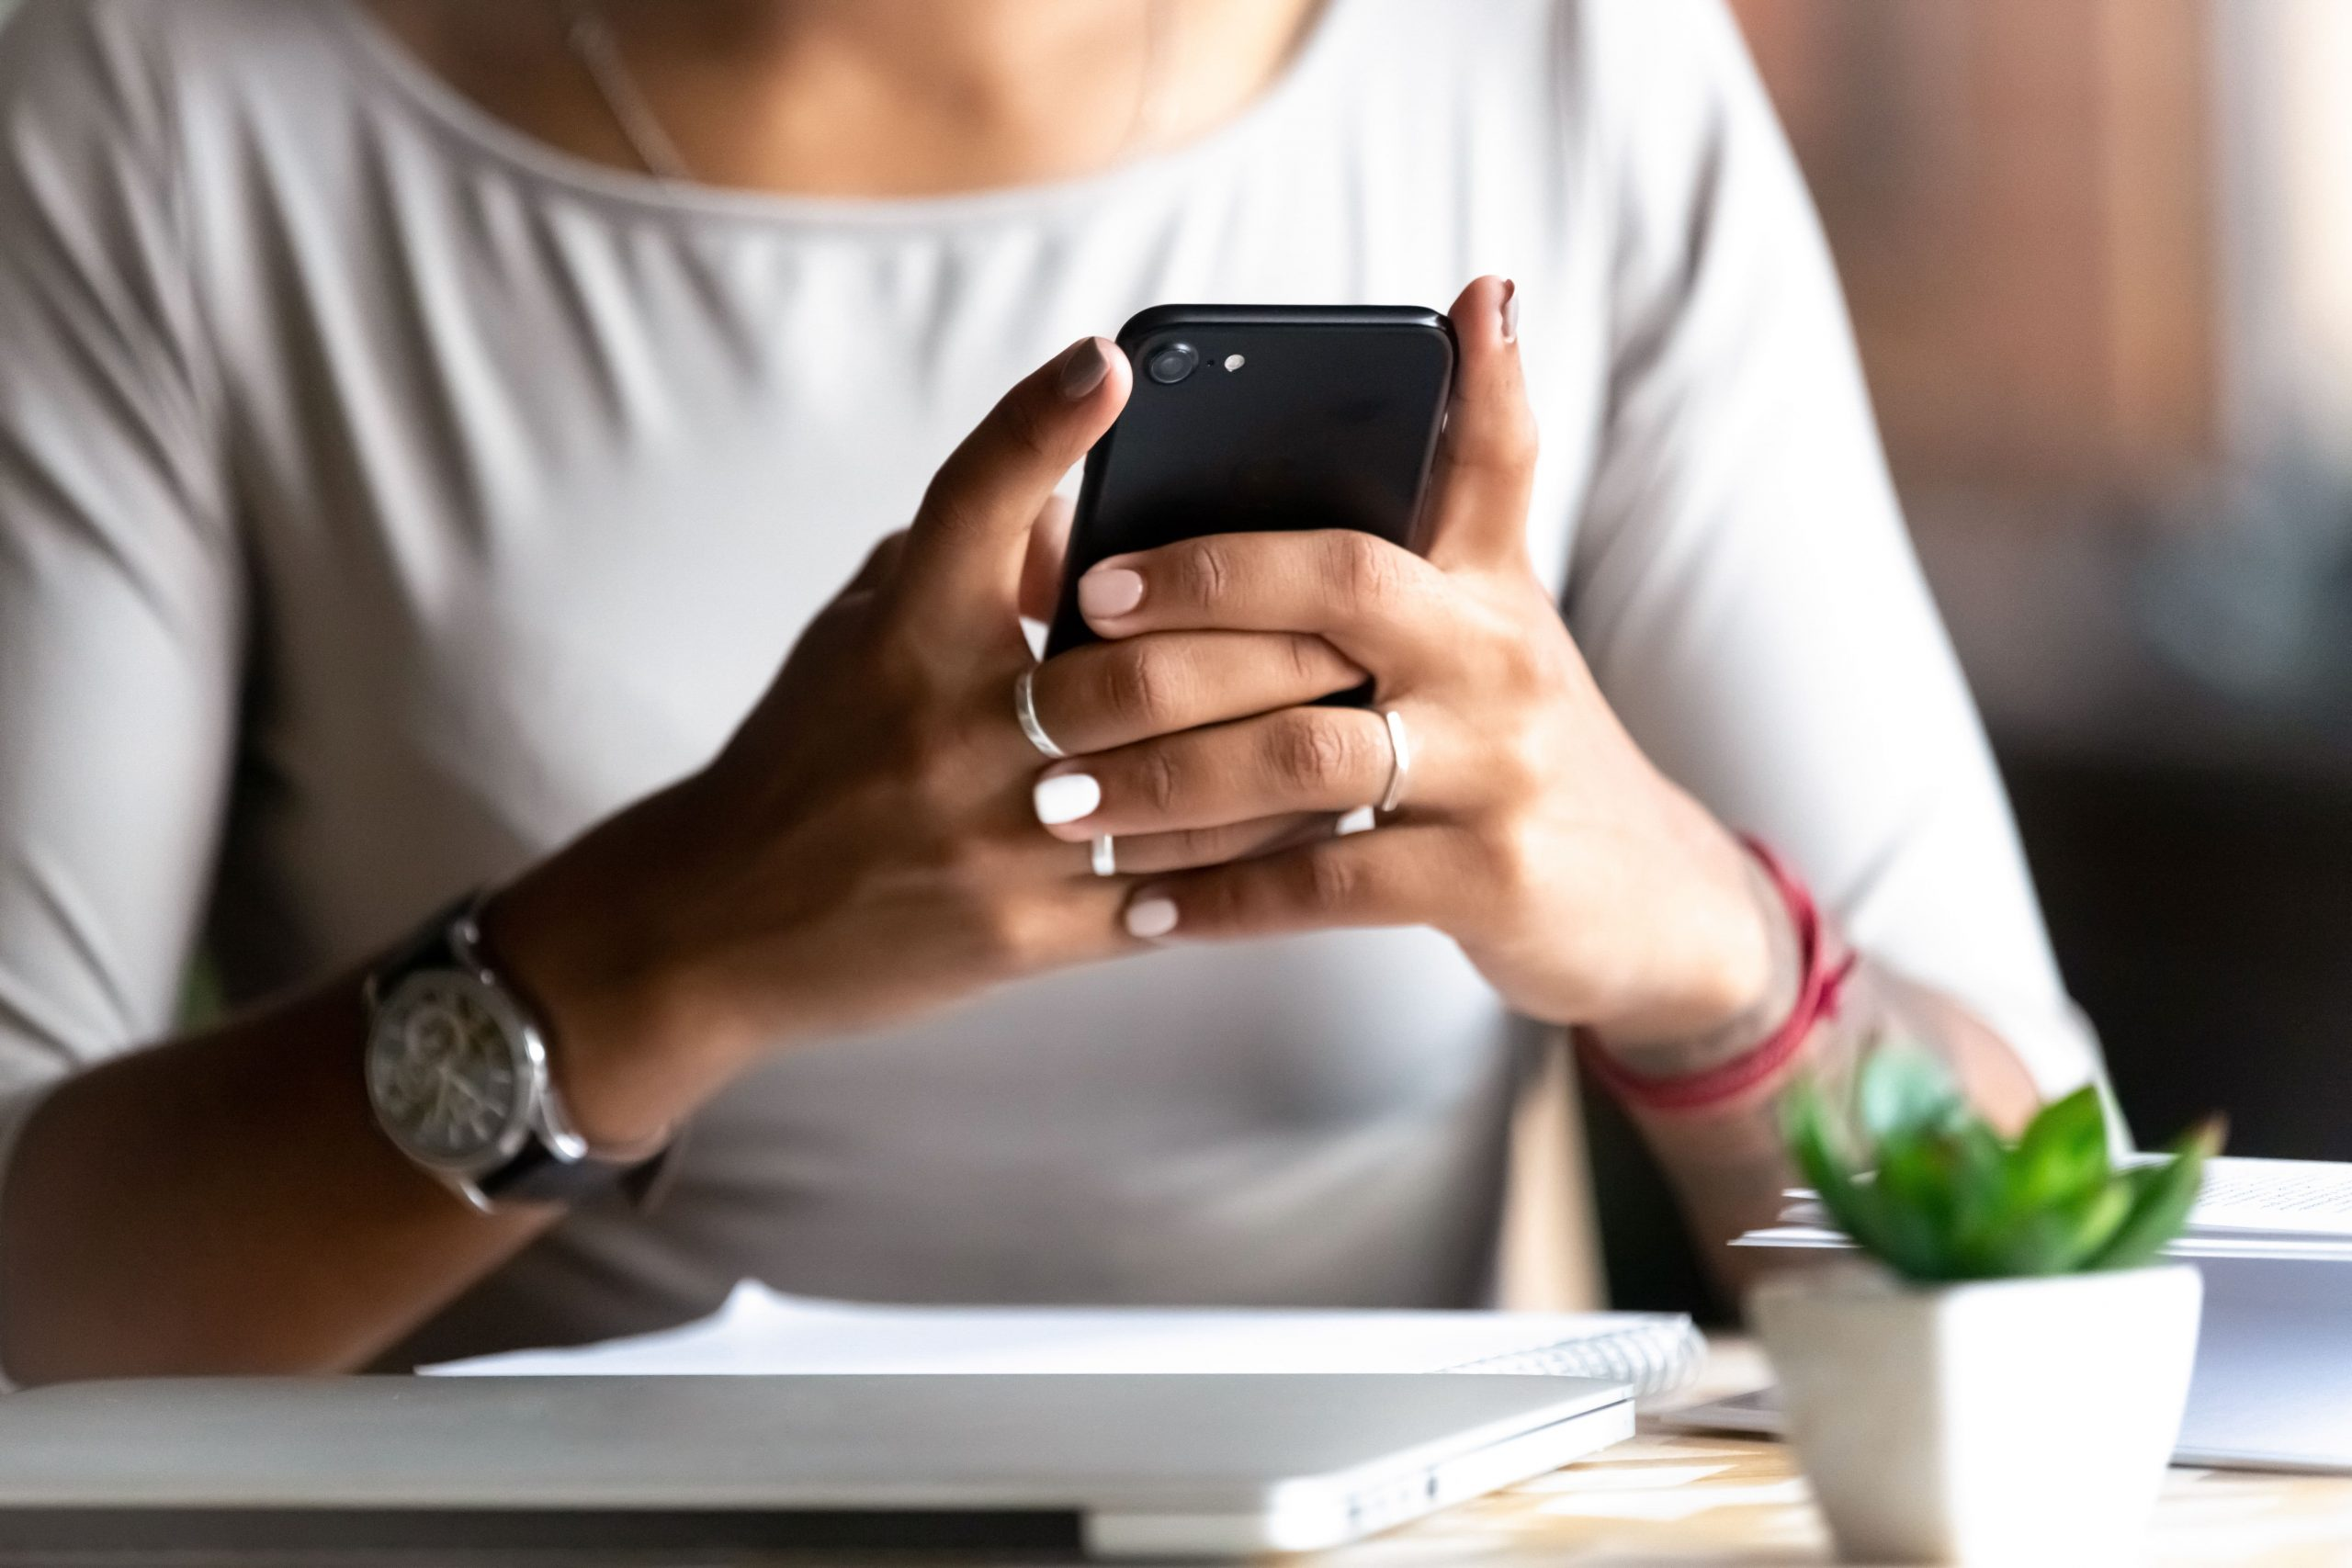 Woman sitting at her desk, holding phone in both hands as she looks at the screen